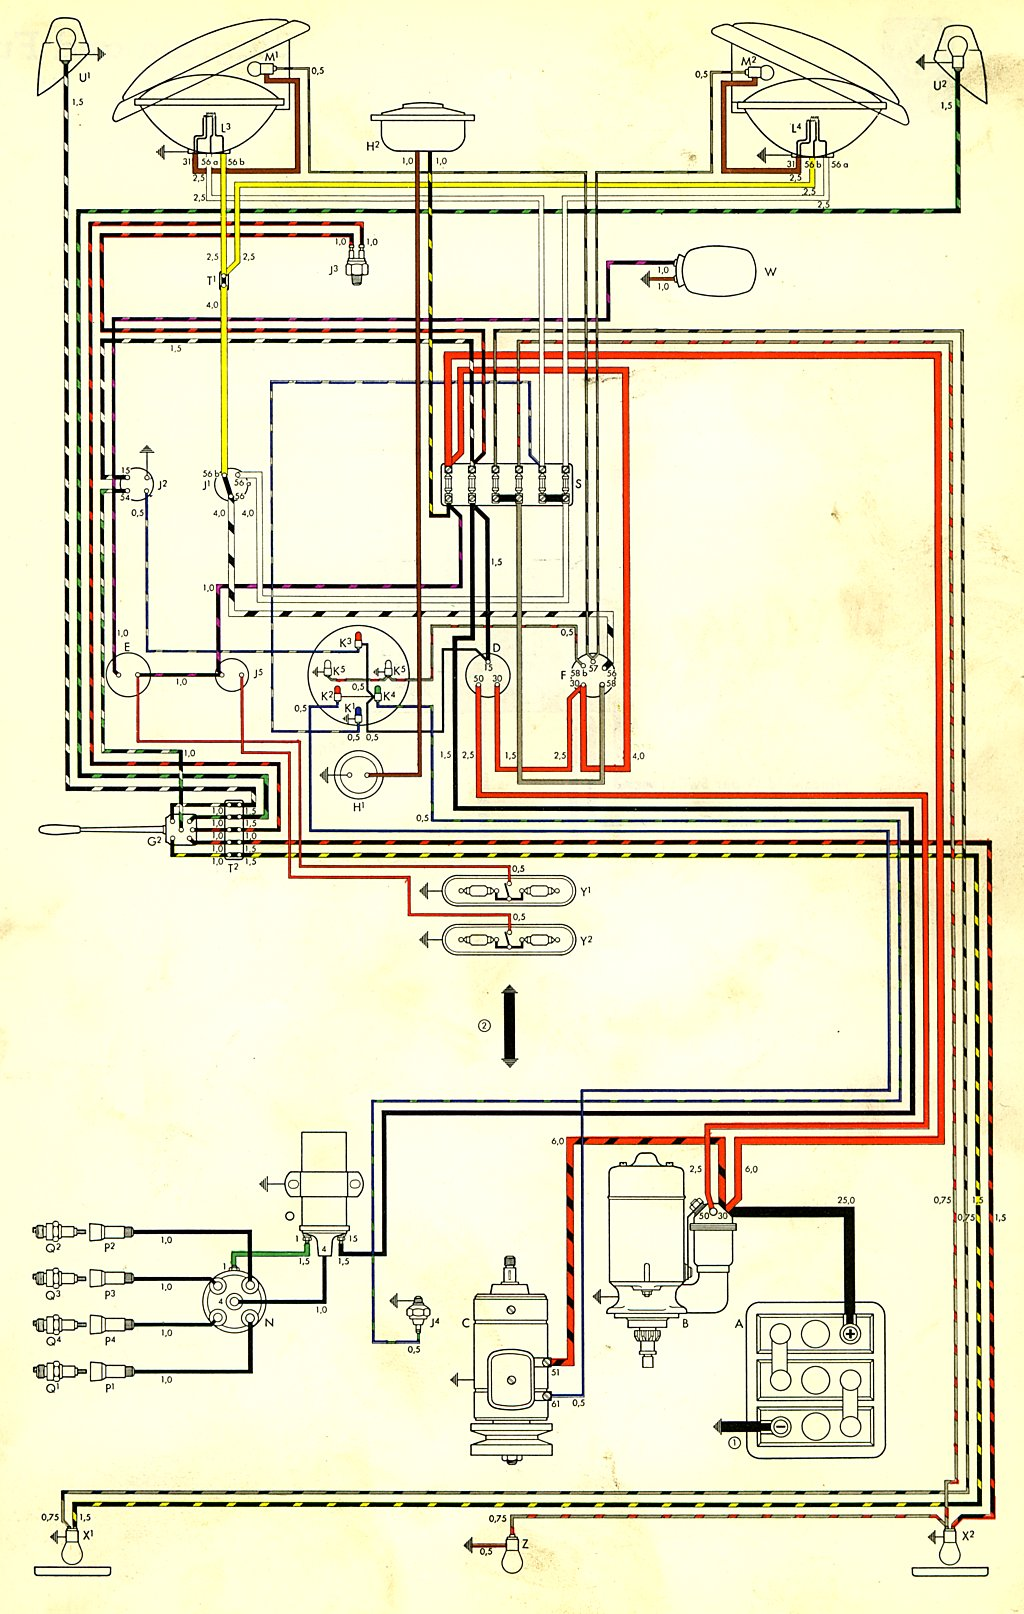 Type 2 Wiring Diagrams Two Wire Alternator Diagram Nissan